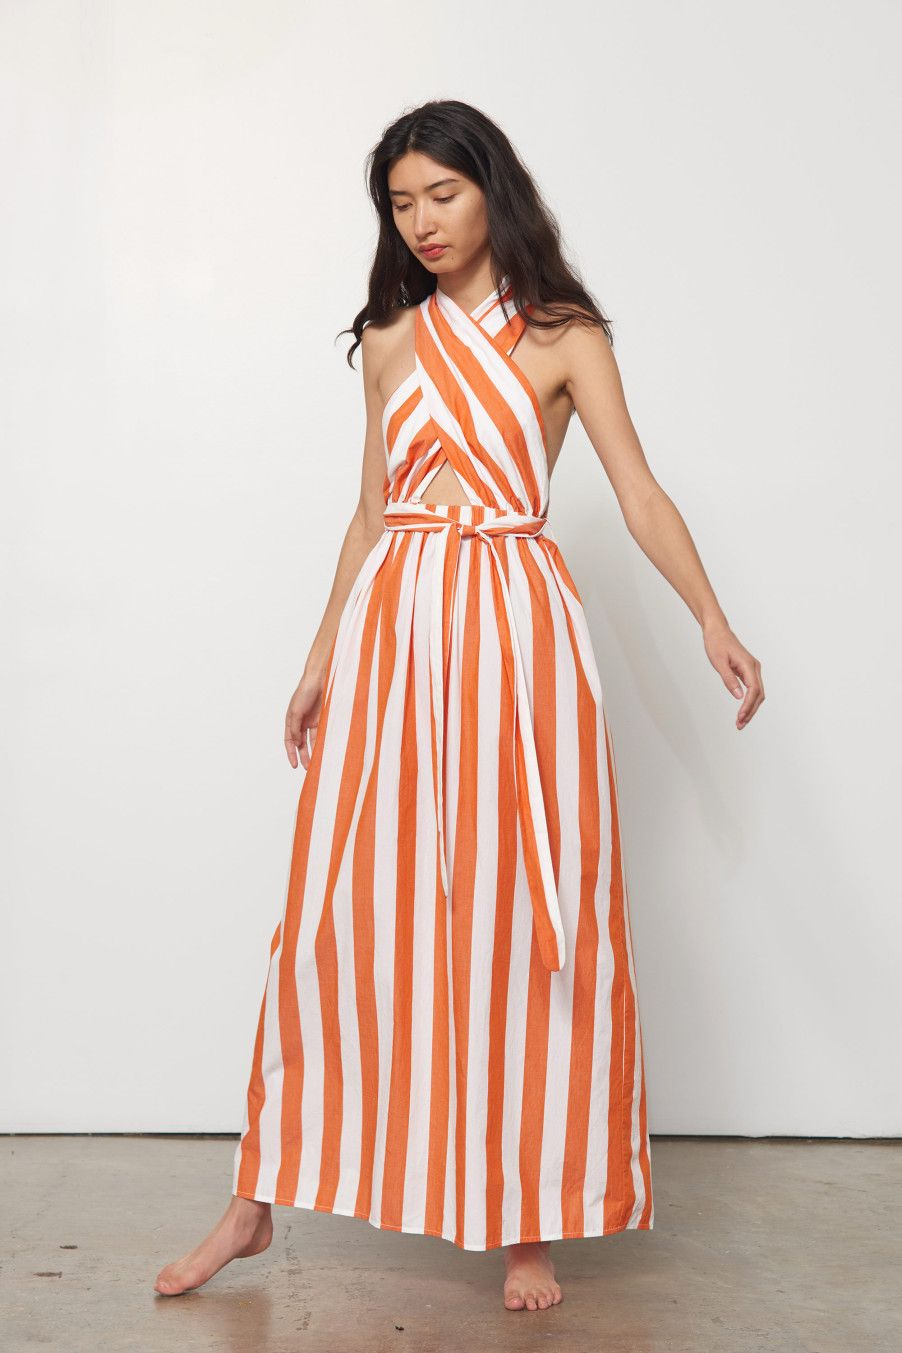 621a41c46748 ROSARIO DRESS #MaraHoffman Church Attire, Beach Wear Dresses, Resort Wear,  Striped Dress